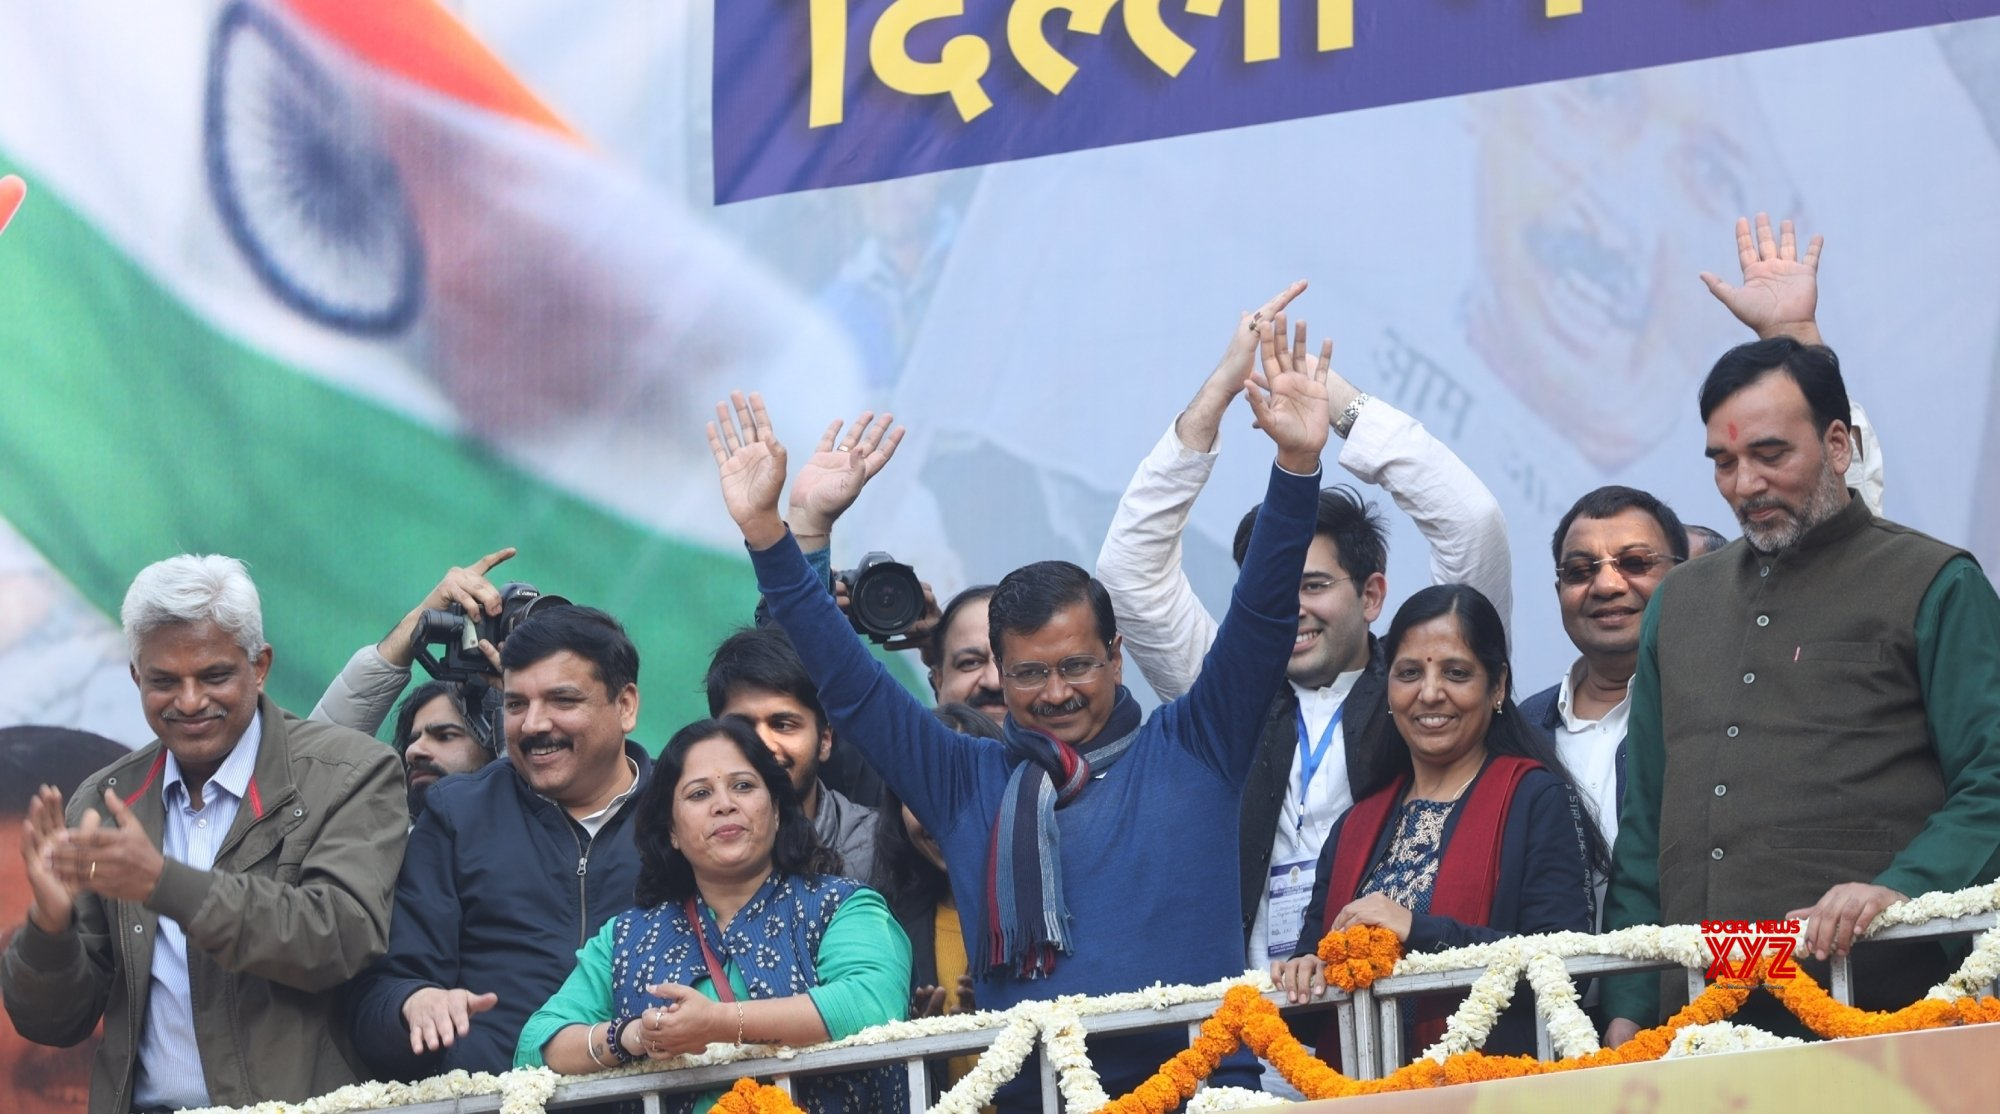 New Delhi: Kejriwal celebrates AAP's landslide victory in Delhi Polls 2020 (Batch - 2) #Gallery